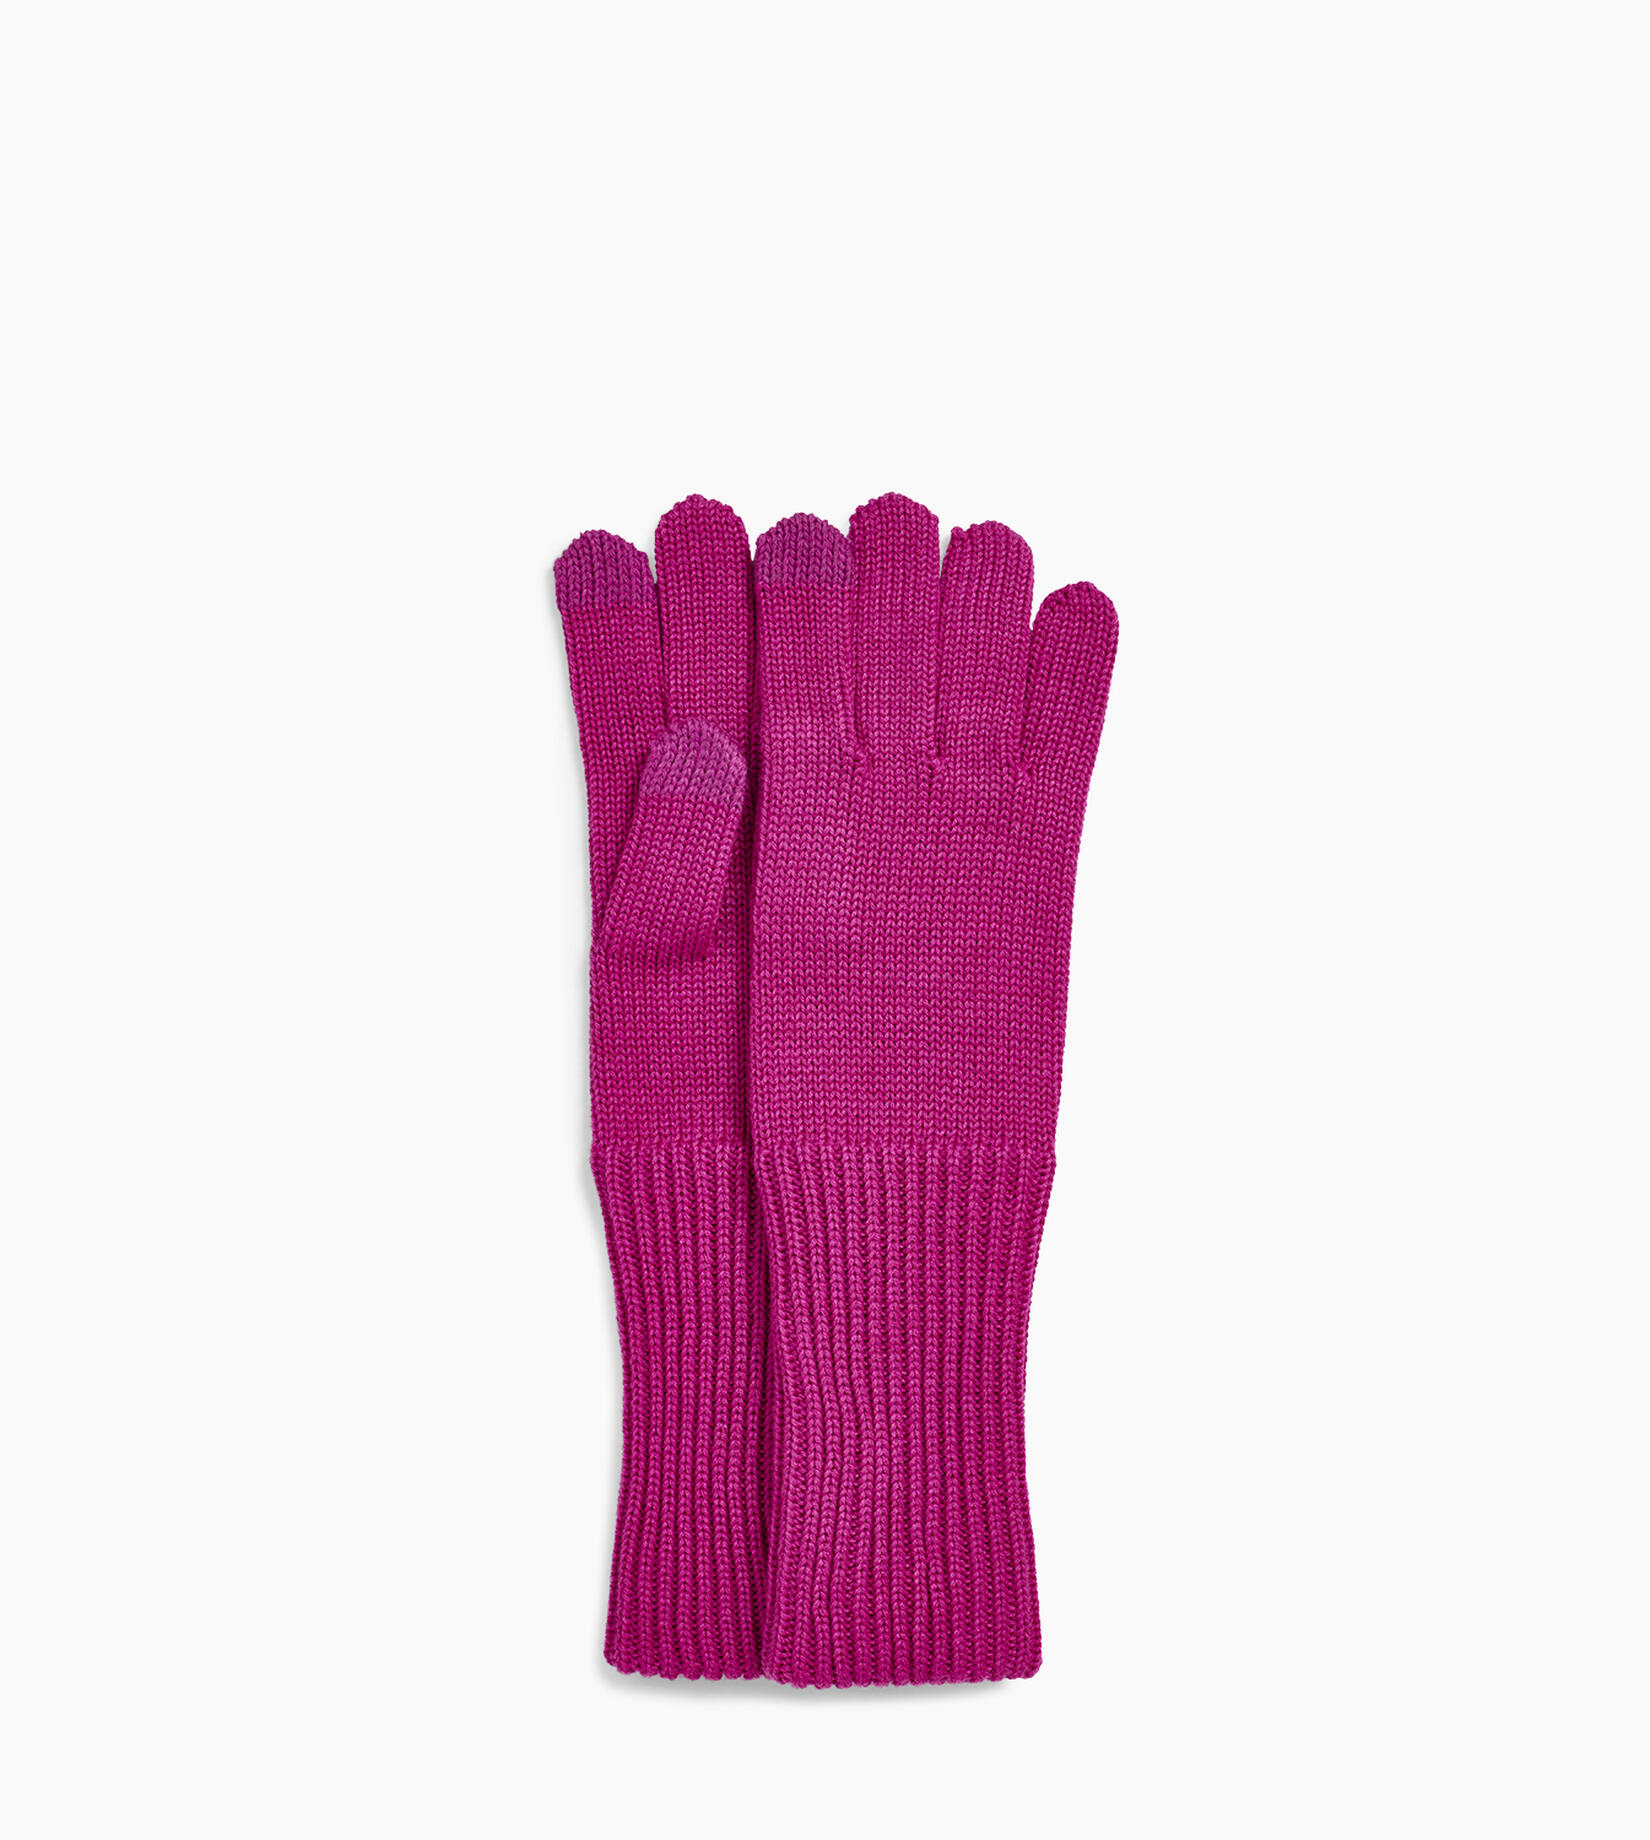 Full Knit Glove